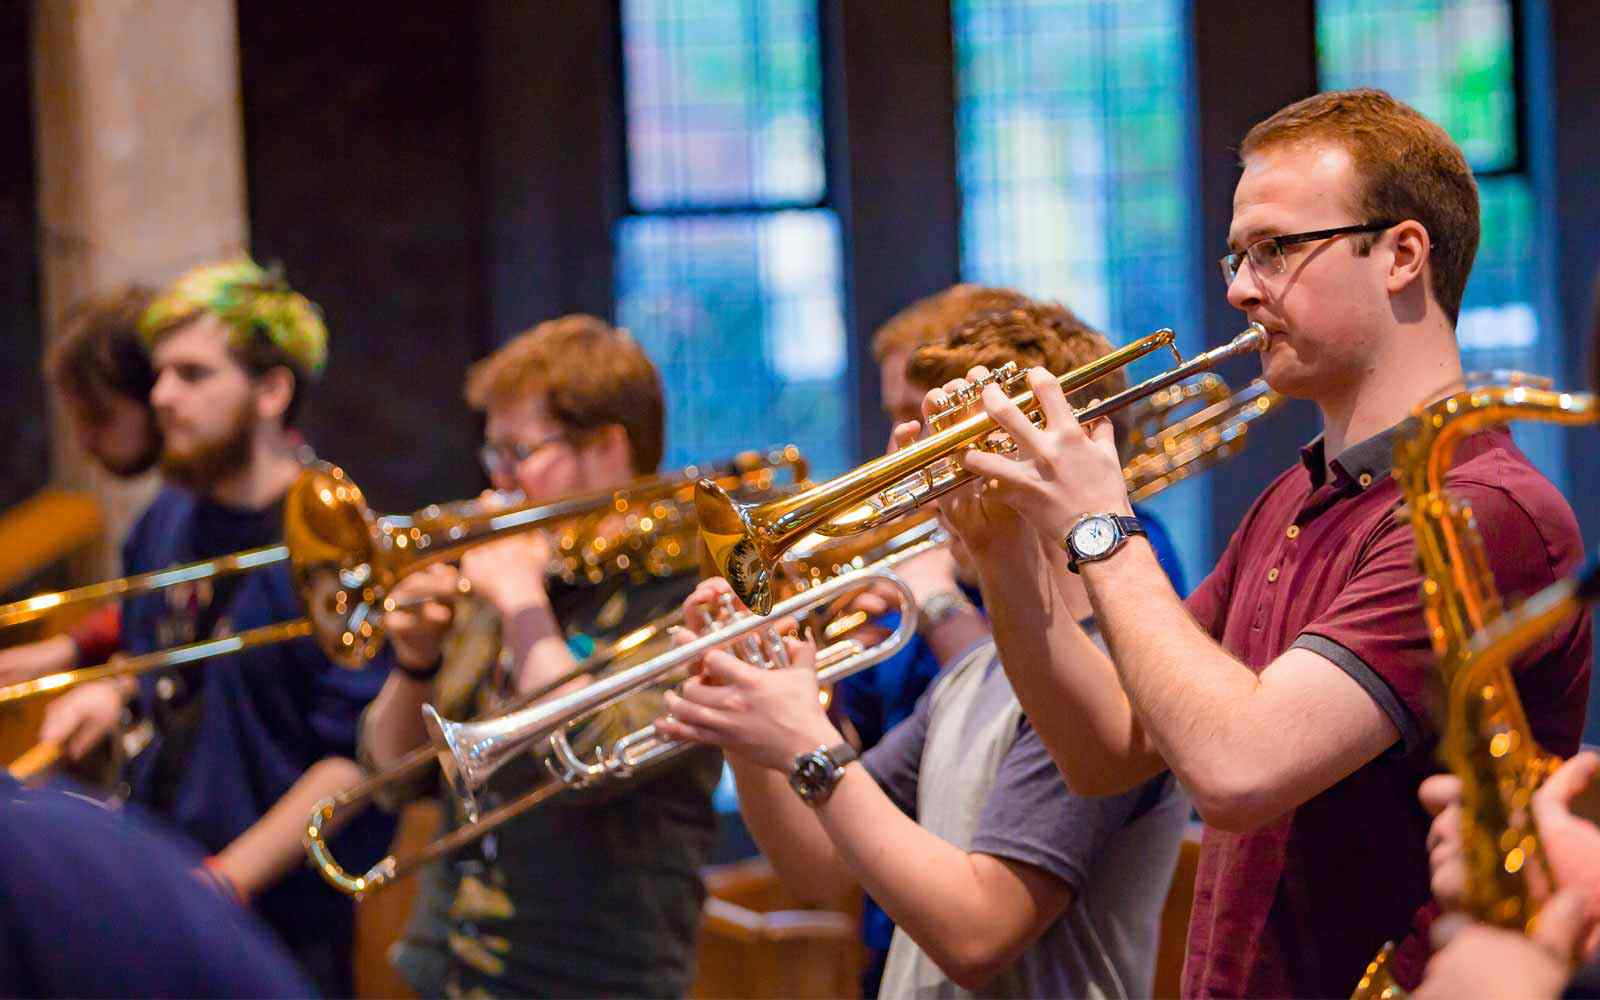 A group of students play brass instruments together in the university chapel.